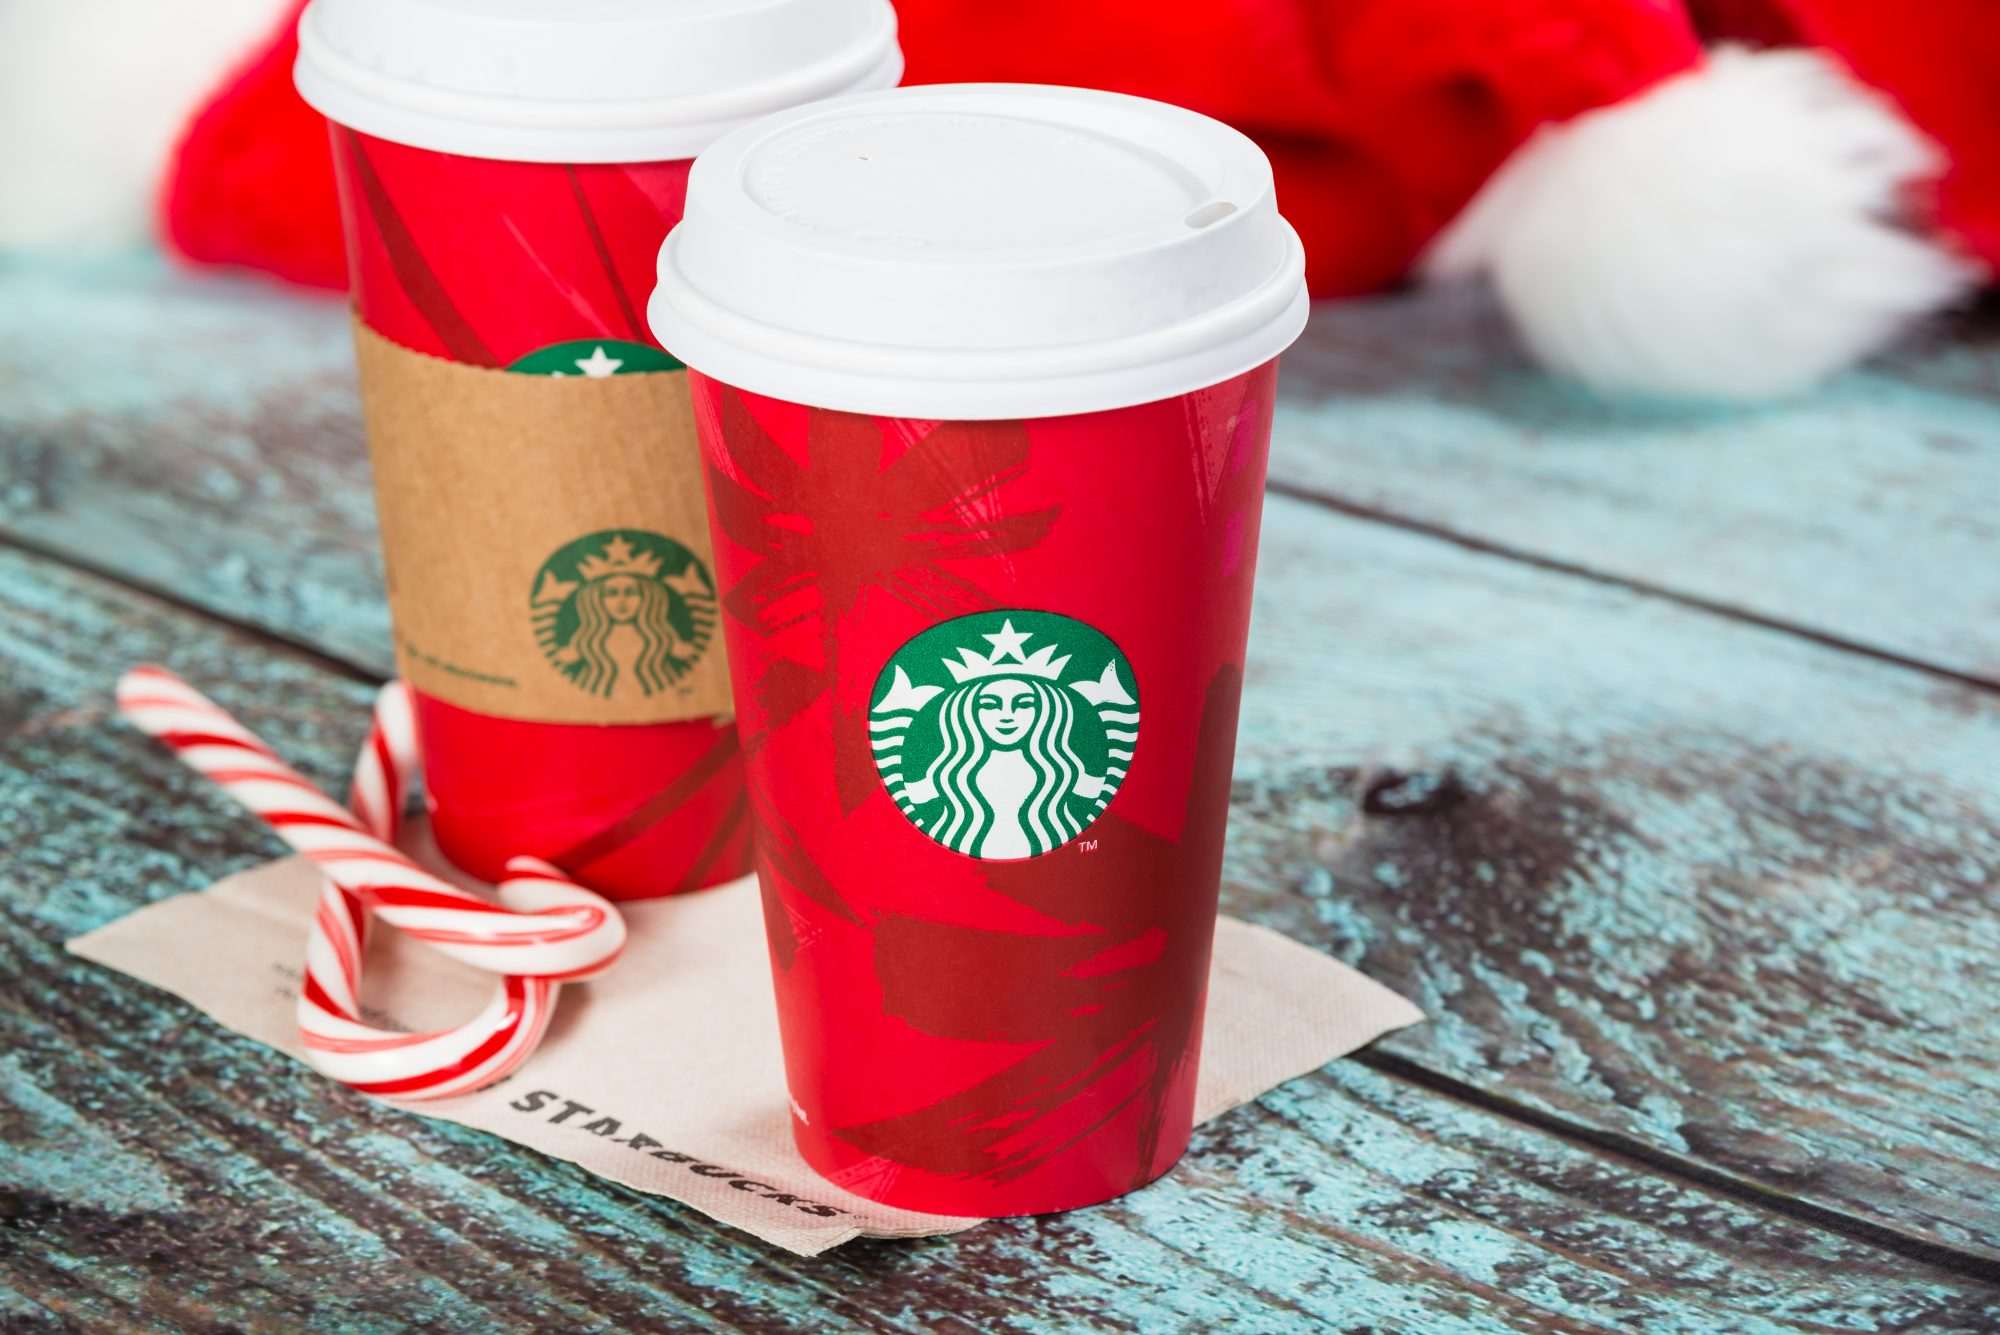 The Starbucks Holiday Cup is Coming Back Soon, and It's Only a Matter of Time Until People are Angry